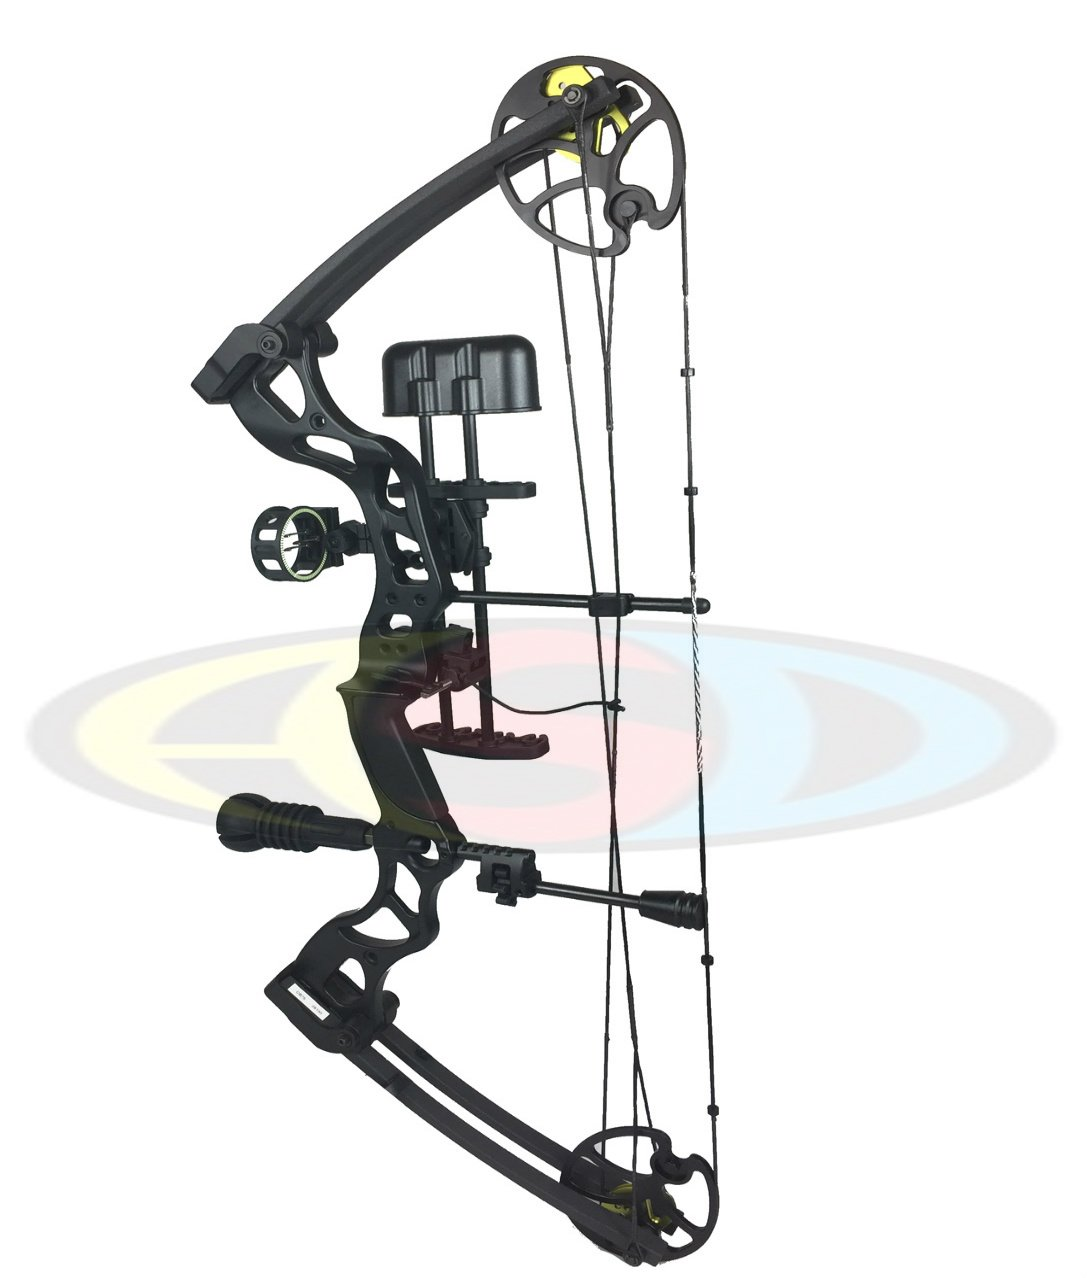 ASD Black Pro Series Adult Archery Compound Bow 70lbs ** COMPLETE PACKAGE ** Archery Supplies Direct